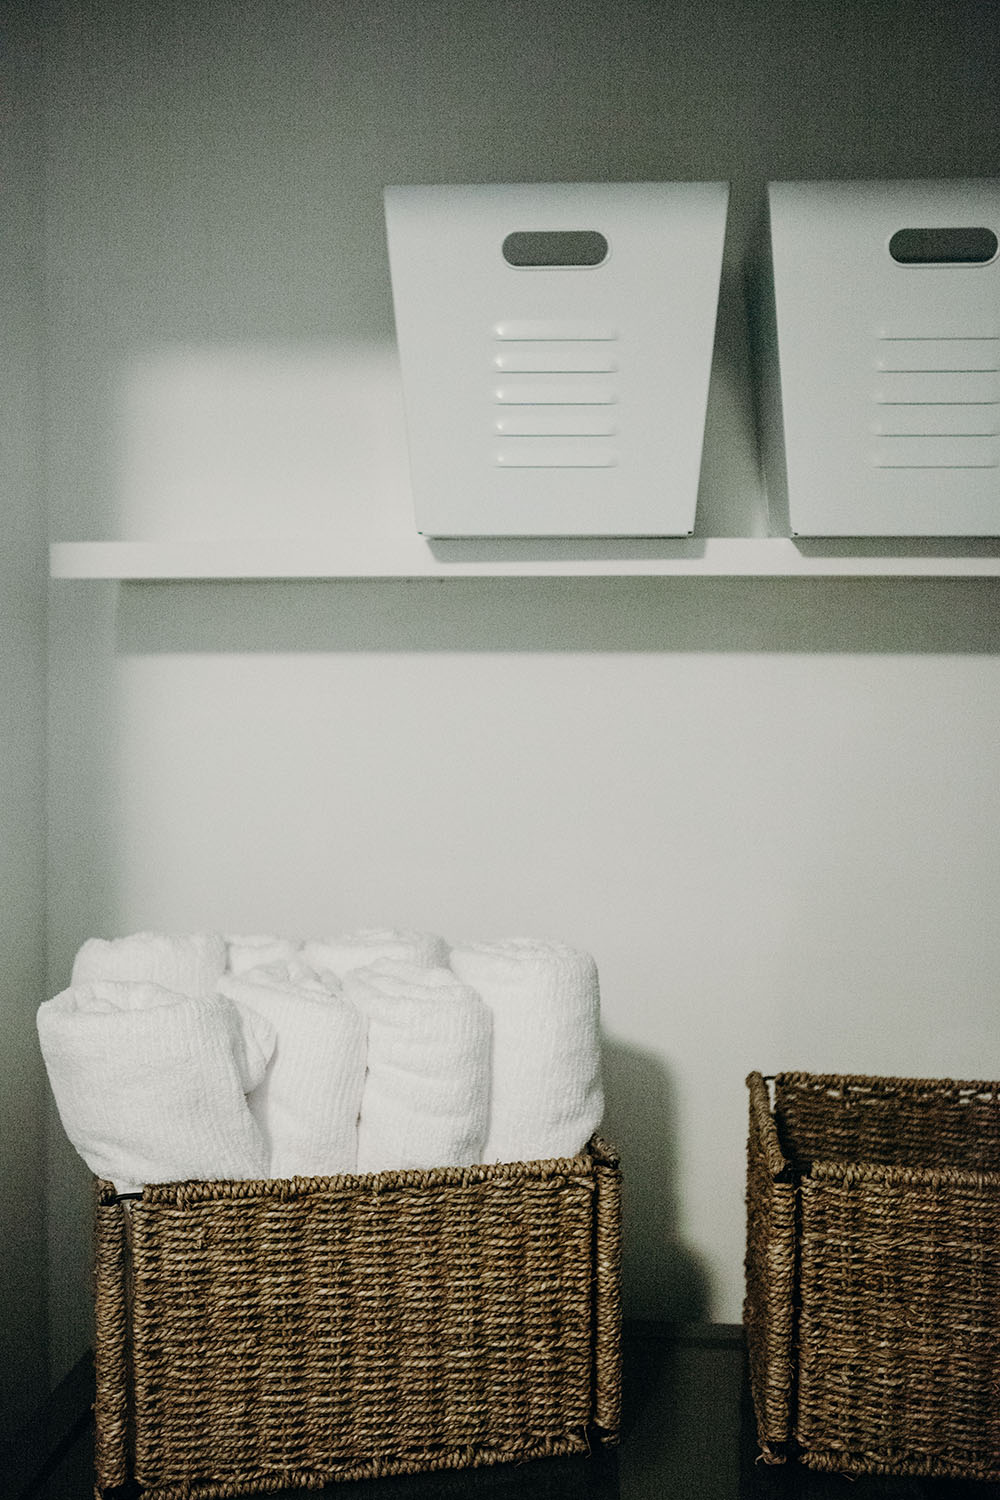 A pair of floating shelves decorated with storage bins.